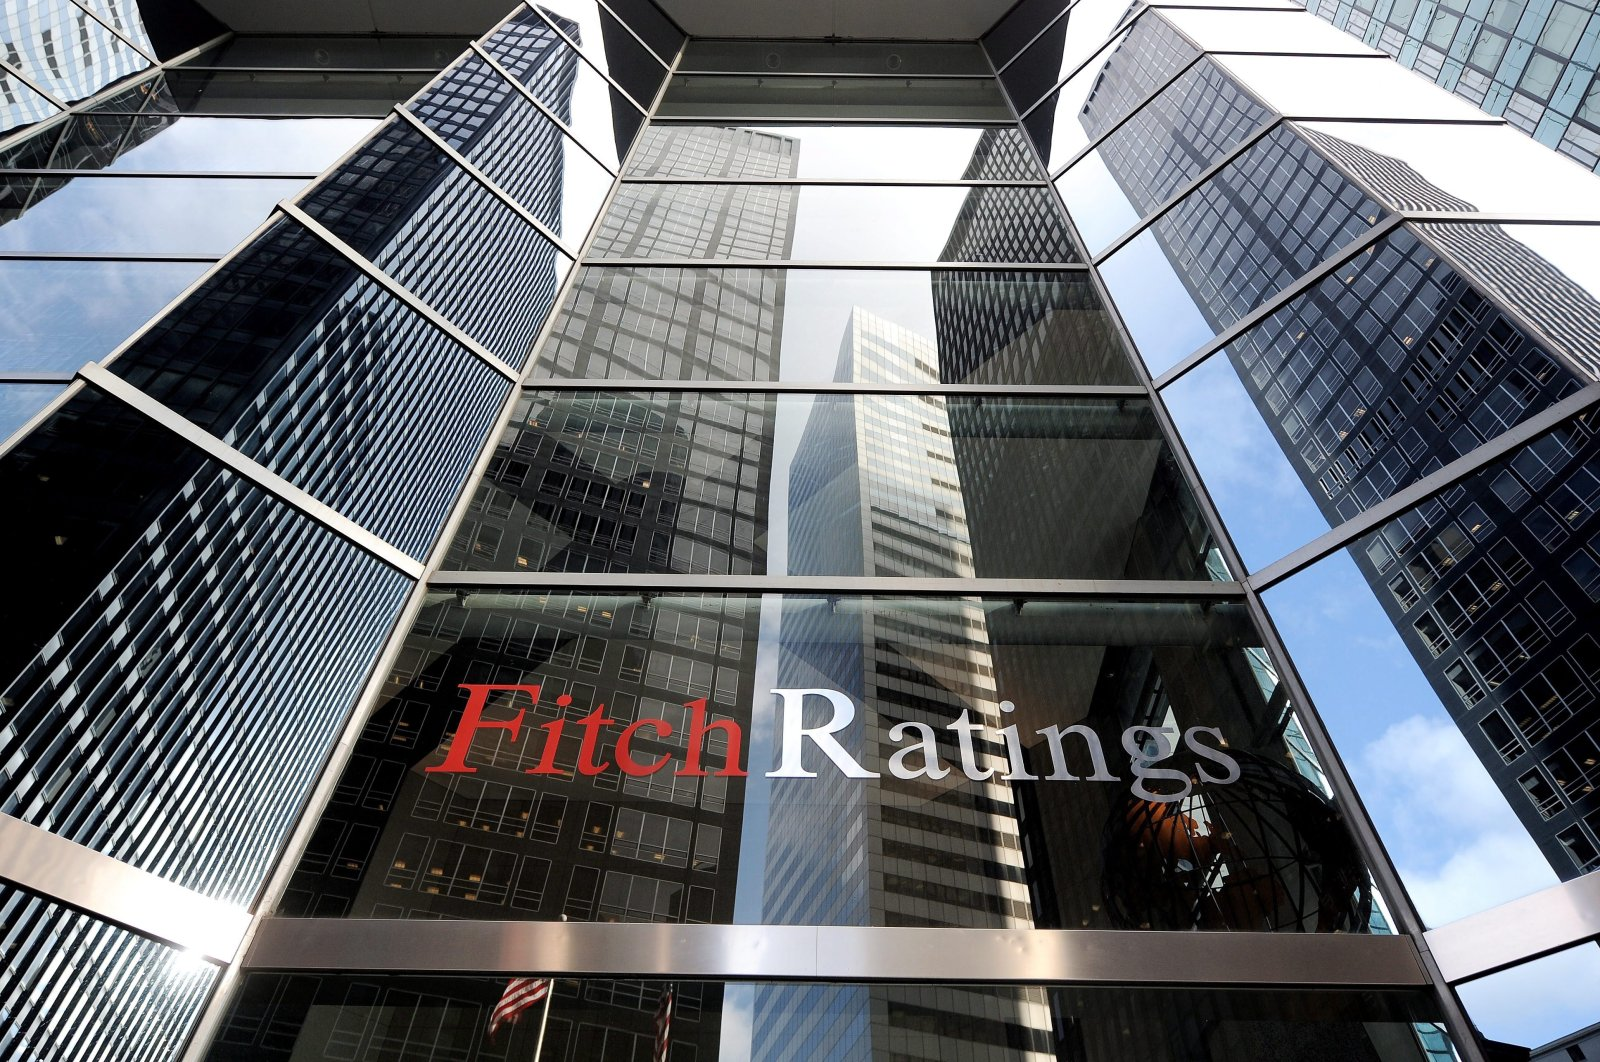 A file photo shows an exterior view of the offices of Fitch Ratings in New York, New York, U.S., Dec. 8, 2011. (EPA Photo)